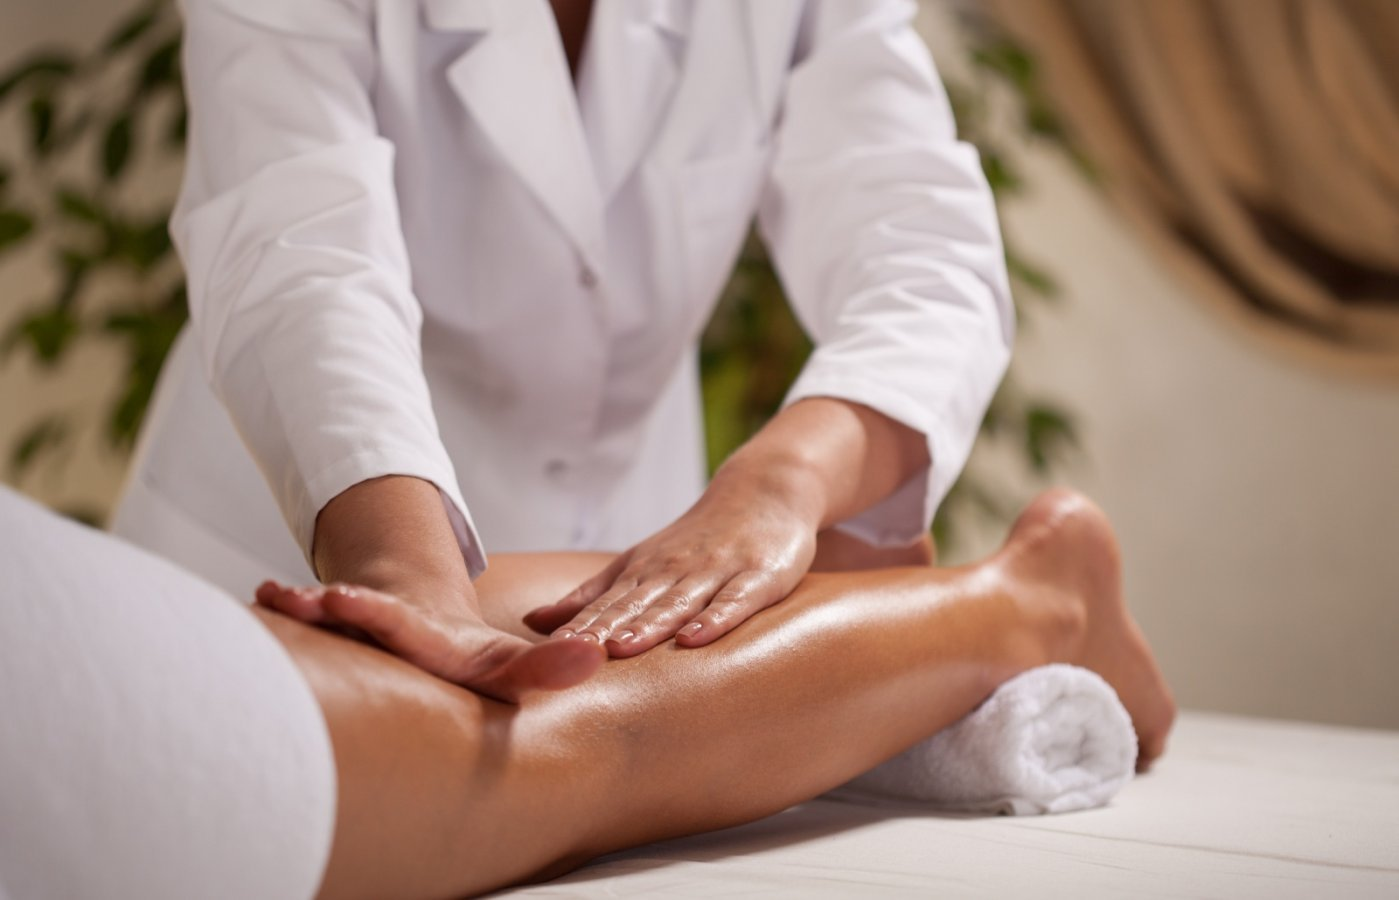 Wellness_i_SPA/Fotolia_71343363_L.jpg